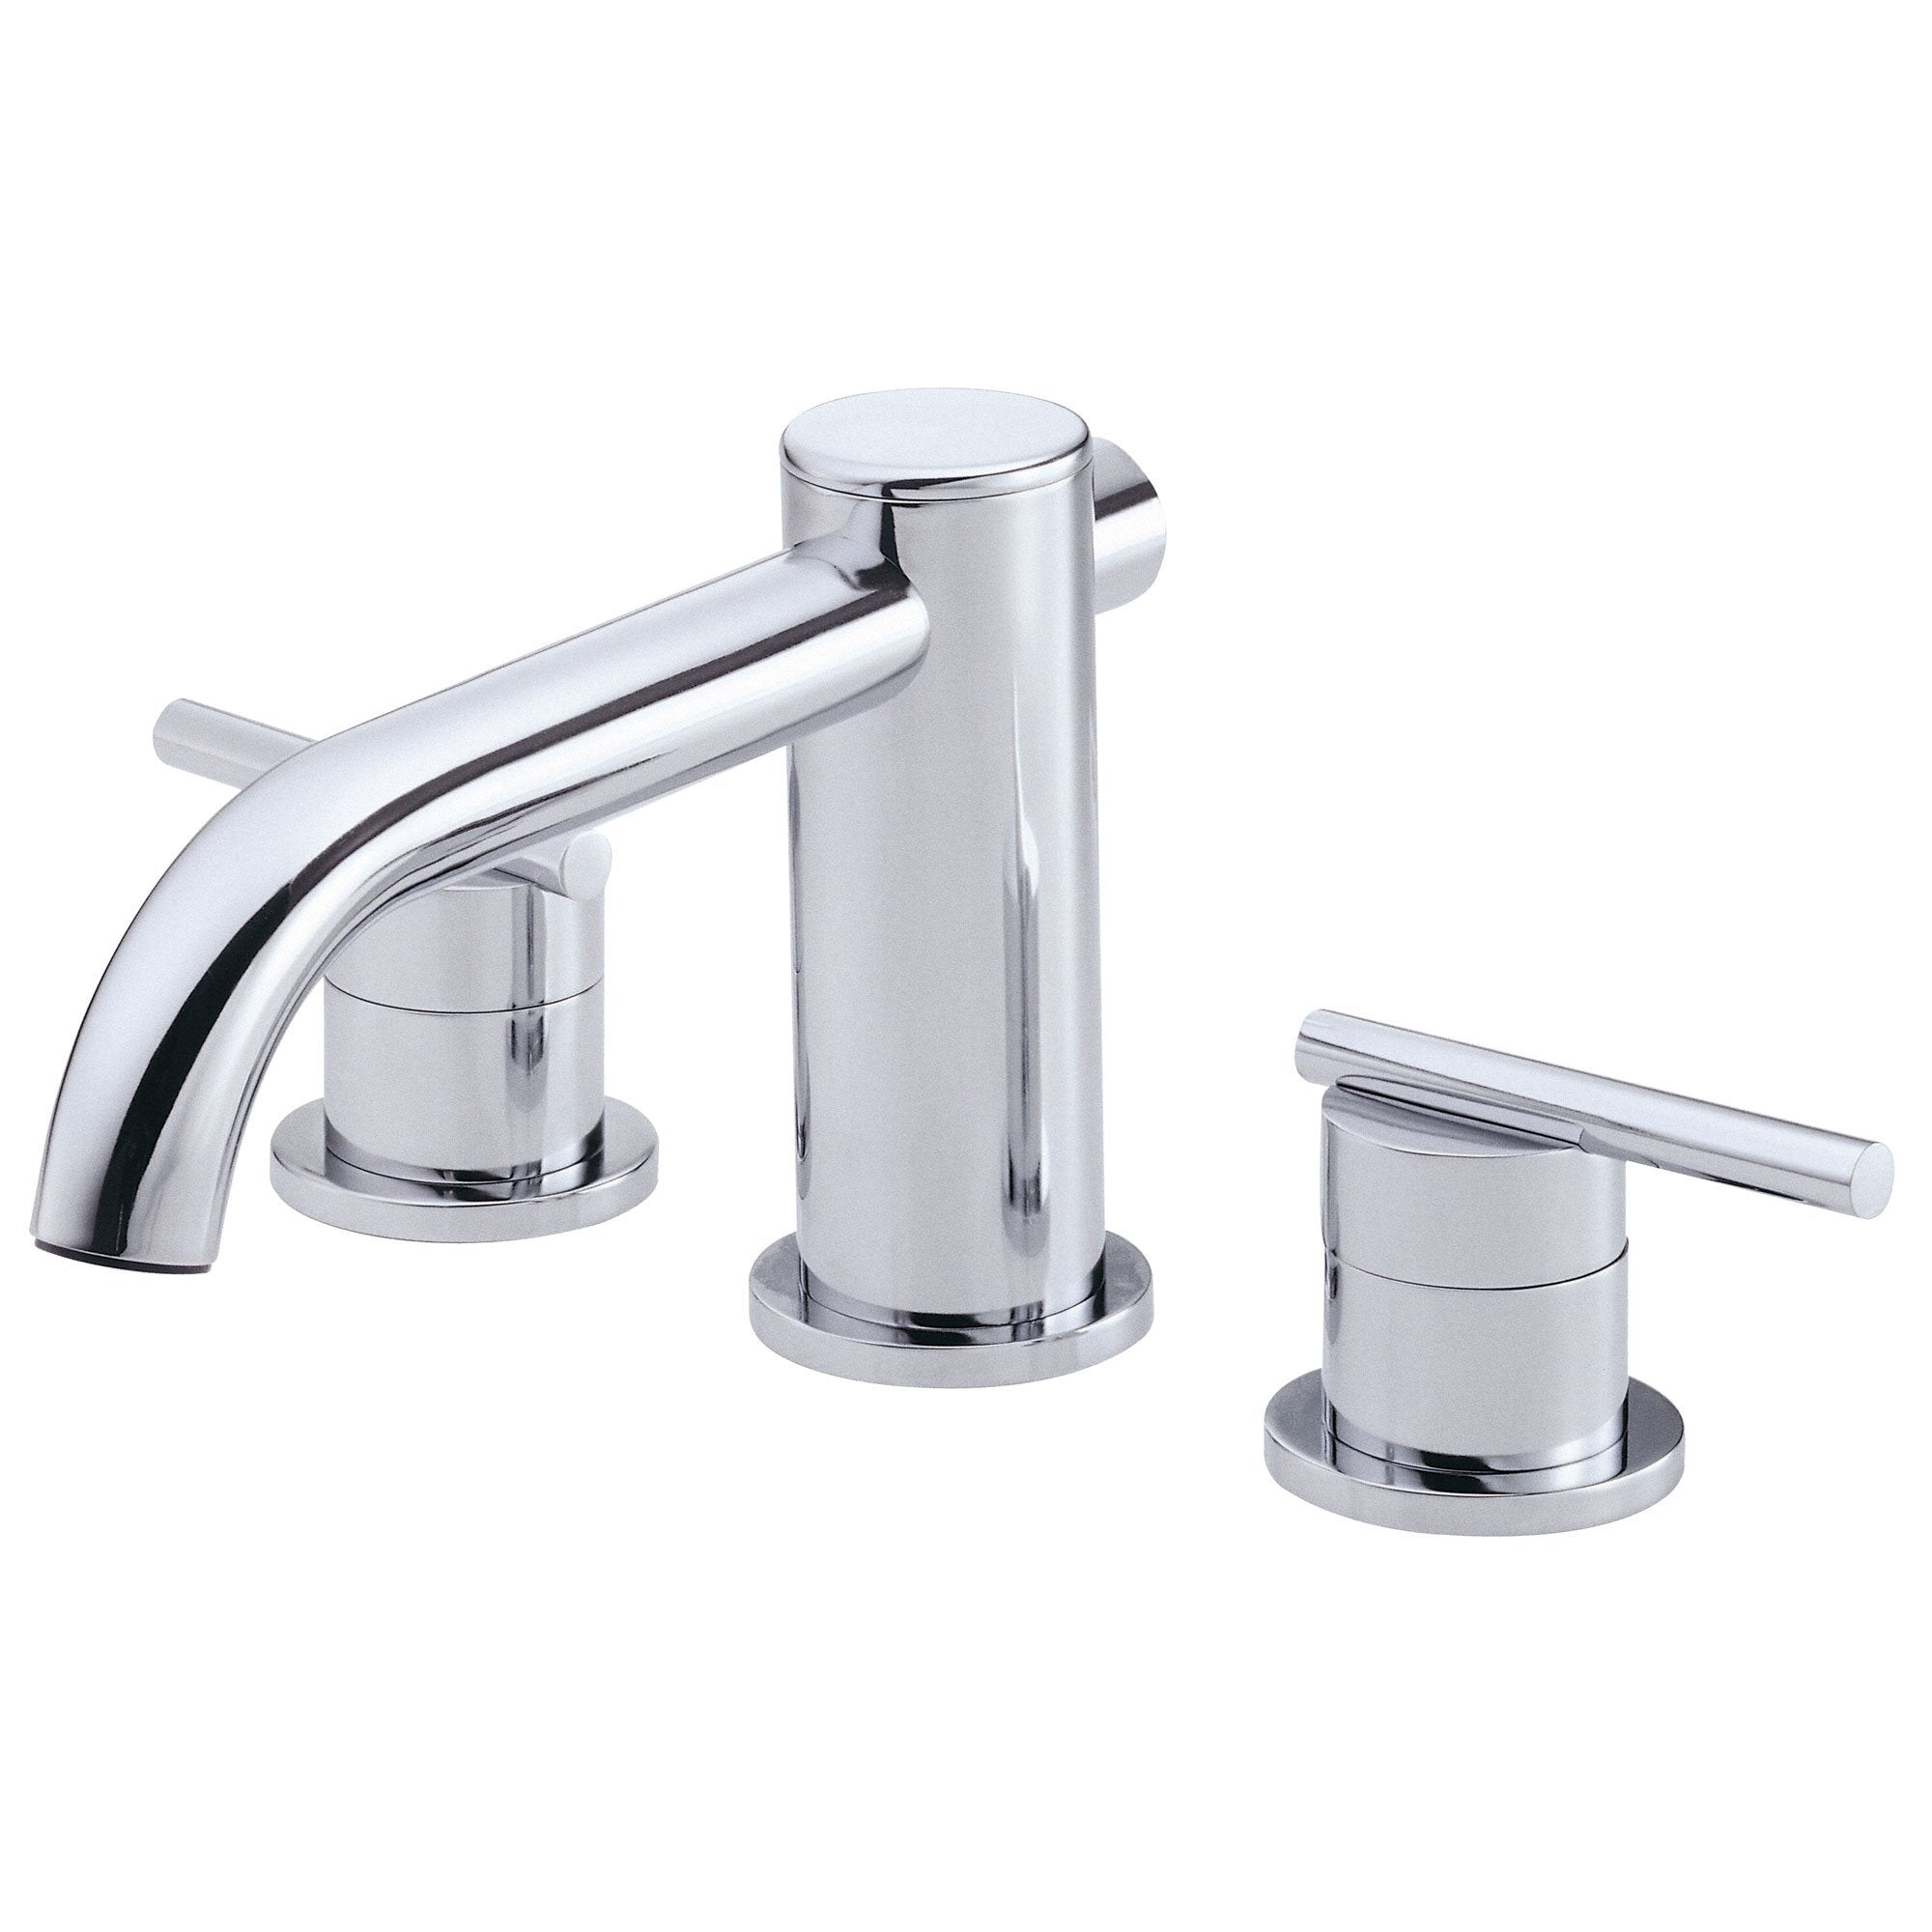 Danze Parma Chrome Cylindrical Widespread Roman Tub Filler Faucet ...